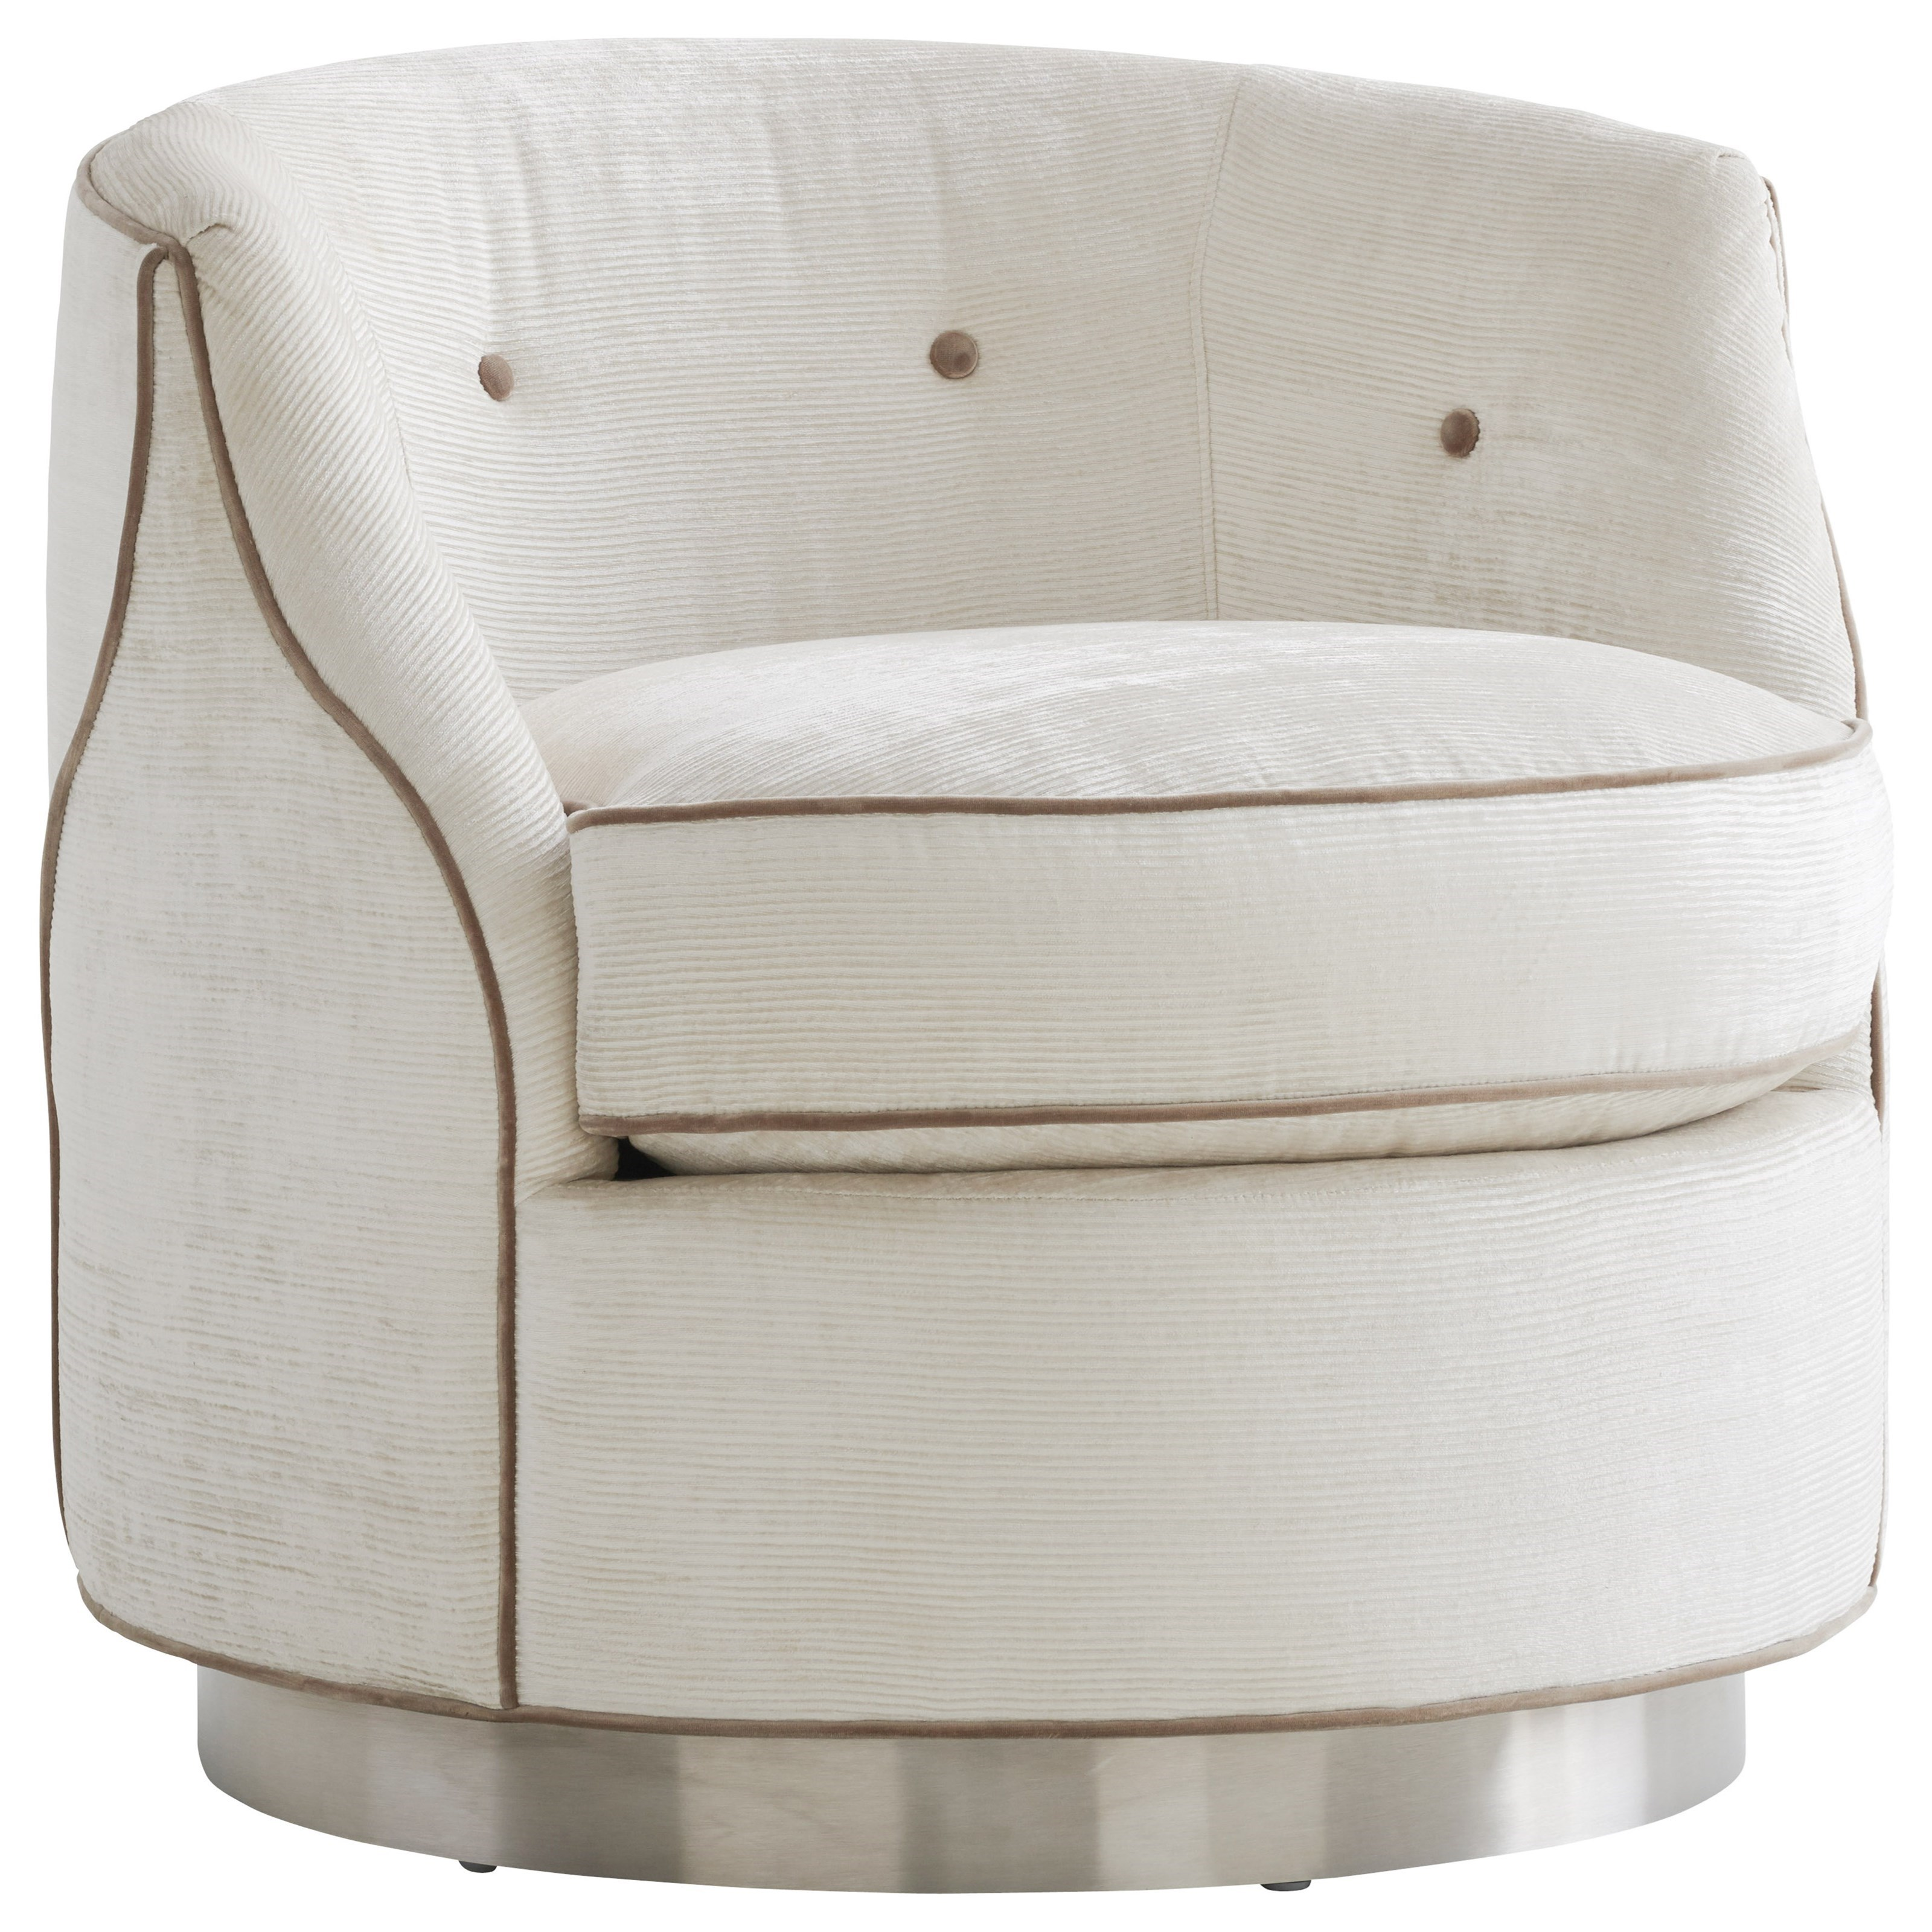 Avondale Robertson Swivel Chair by Lexington at Johnny Janosik